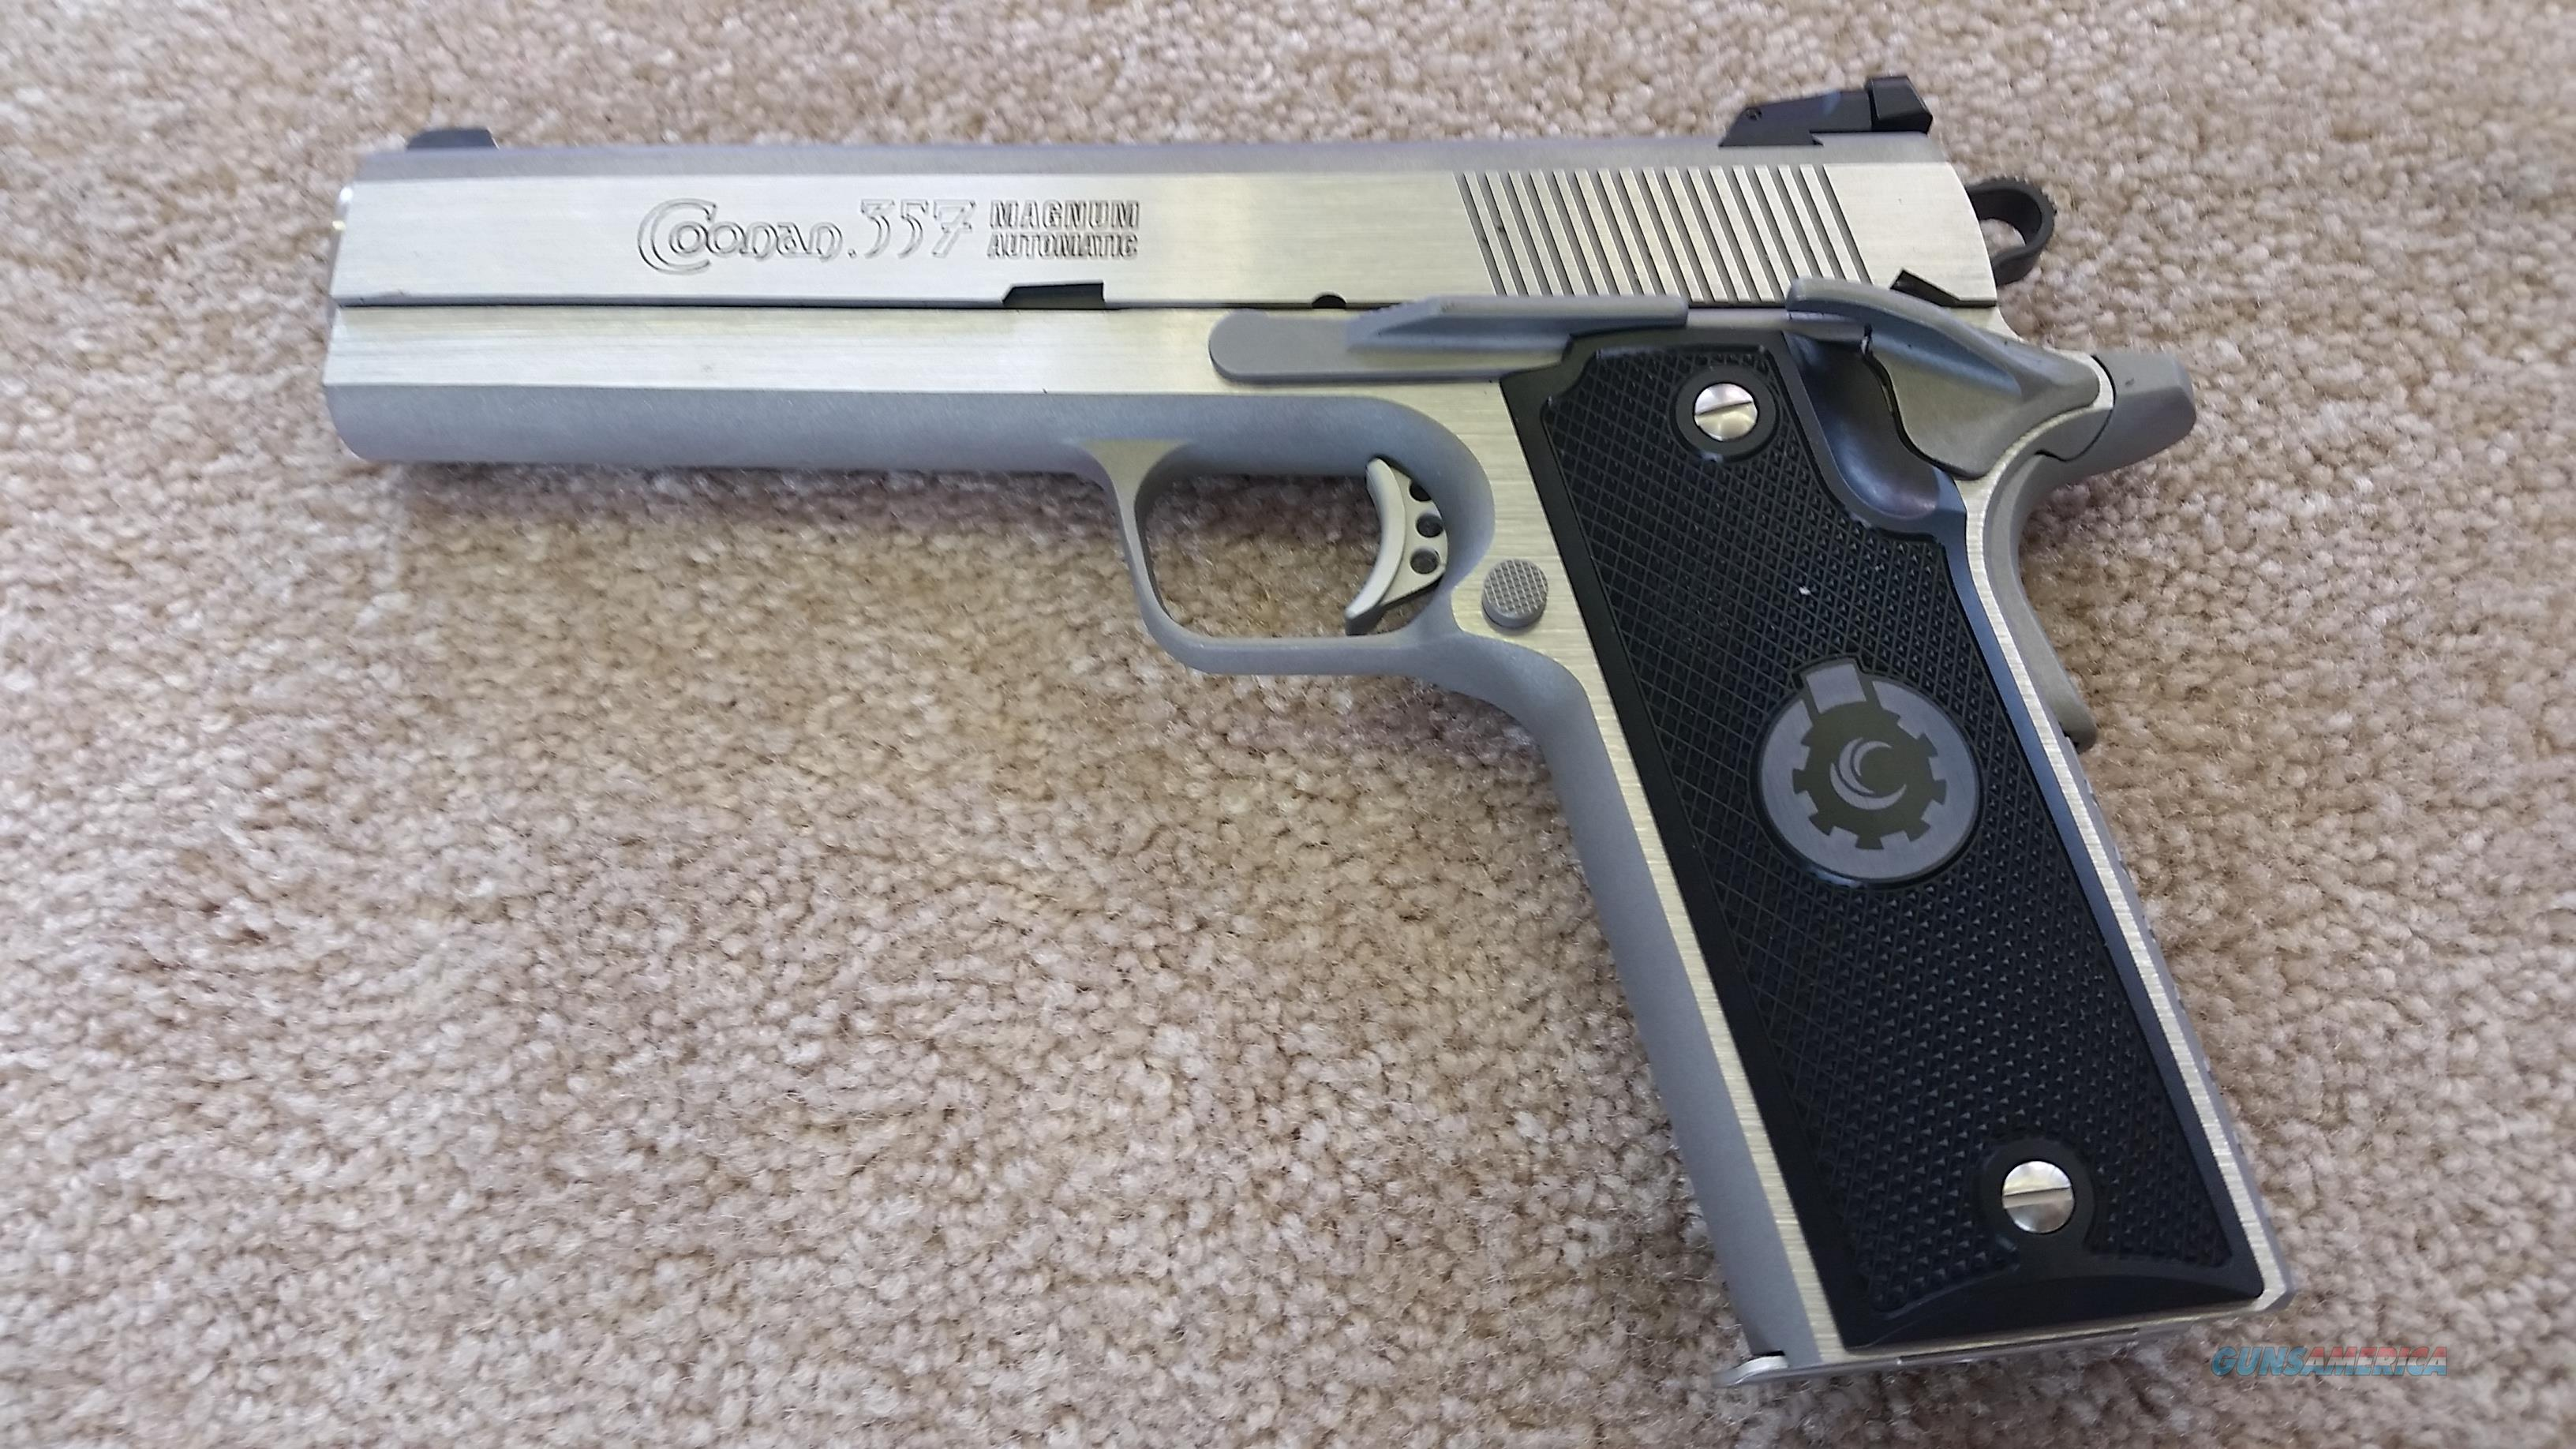 Coonan Classic .357/ 38 w/ (2) 7 Round Mags and .38 spc Recoil Spring  Guns > Pistols > Coonan Arms Pistols